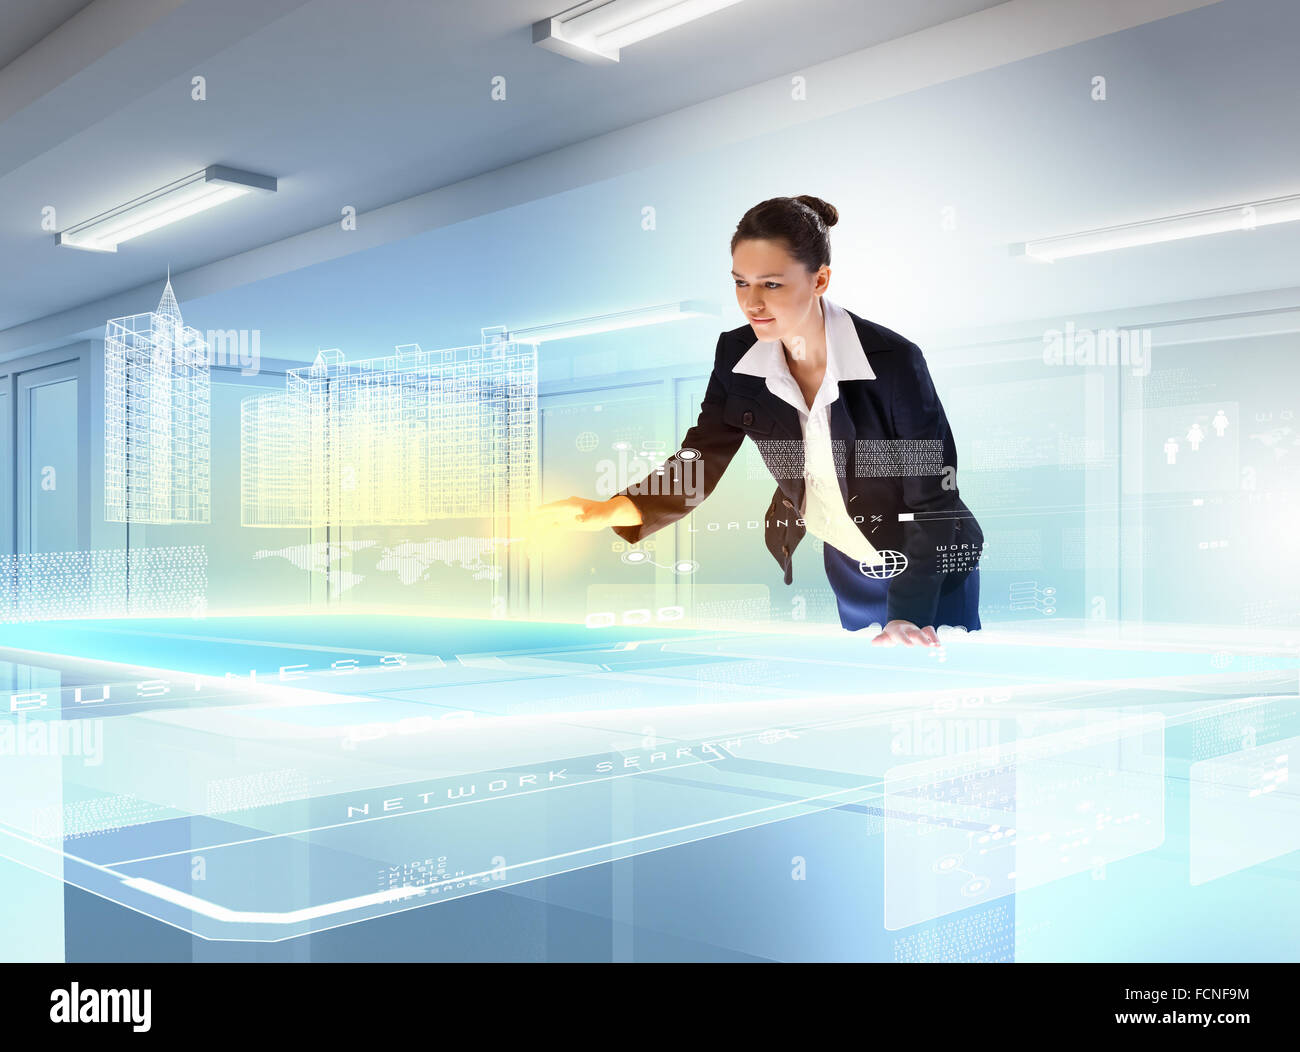 Image of young businesswoman clicking icon on high-tech picture - Stock Image